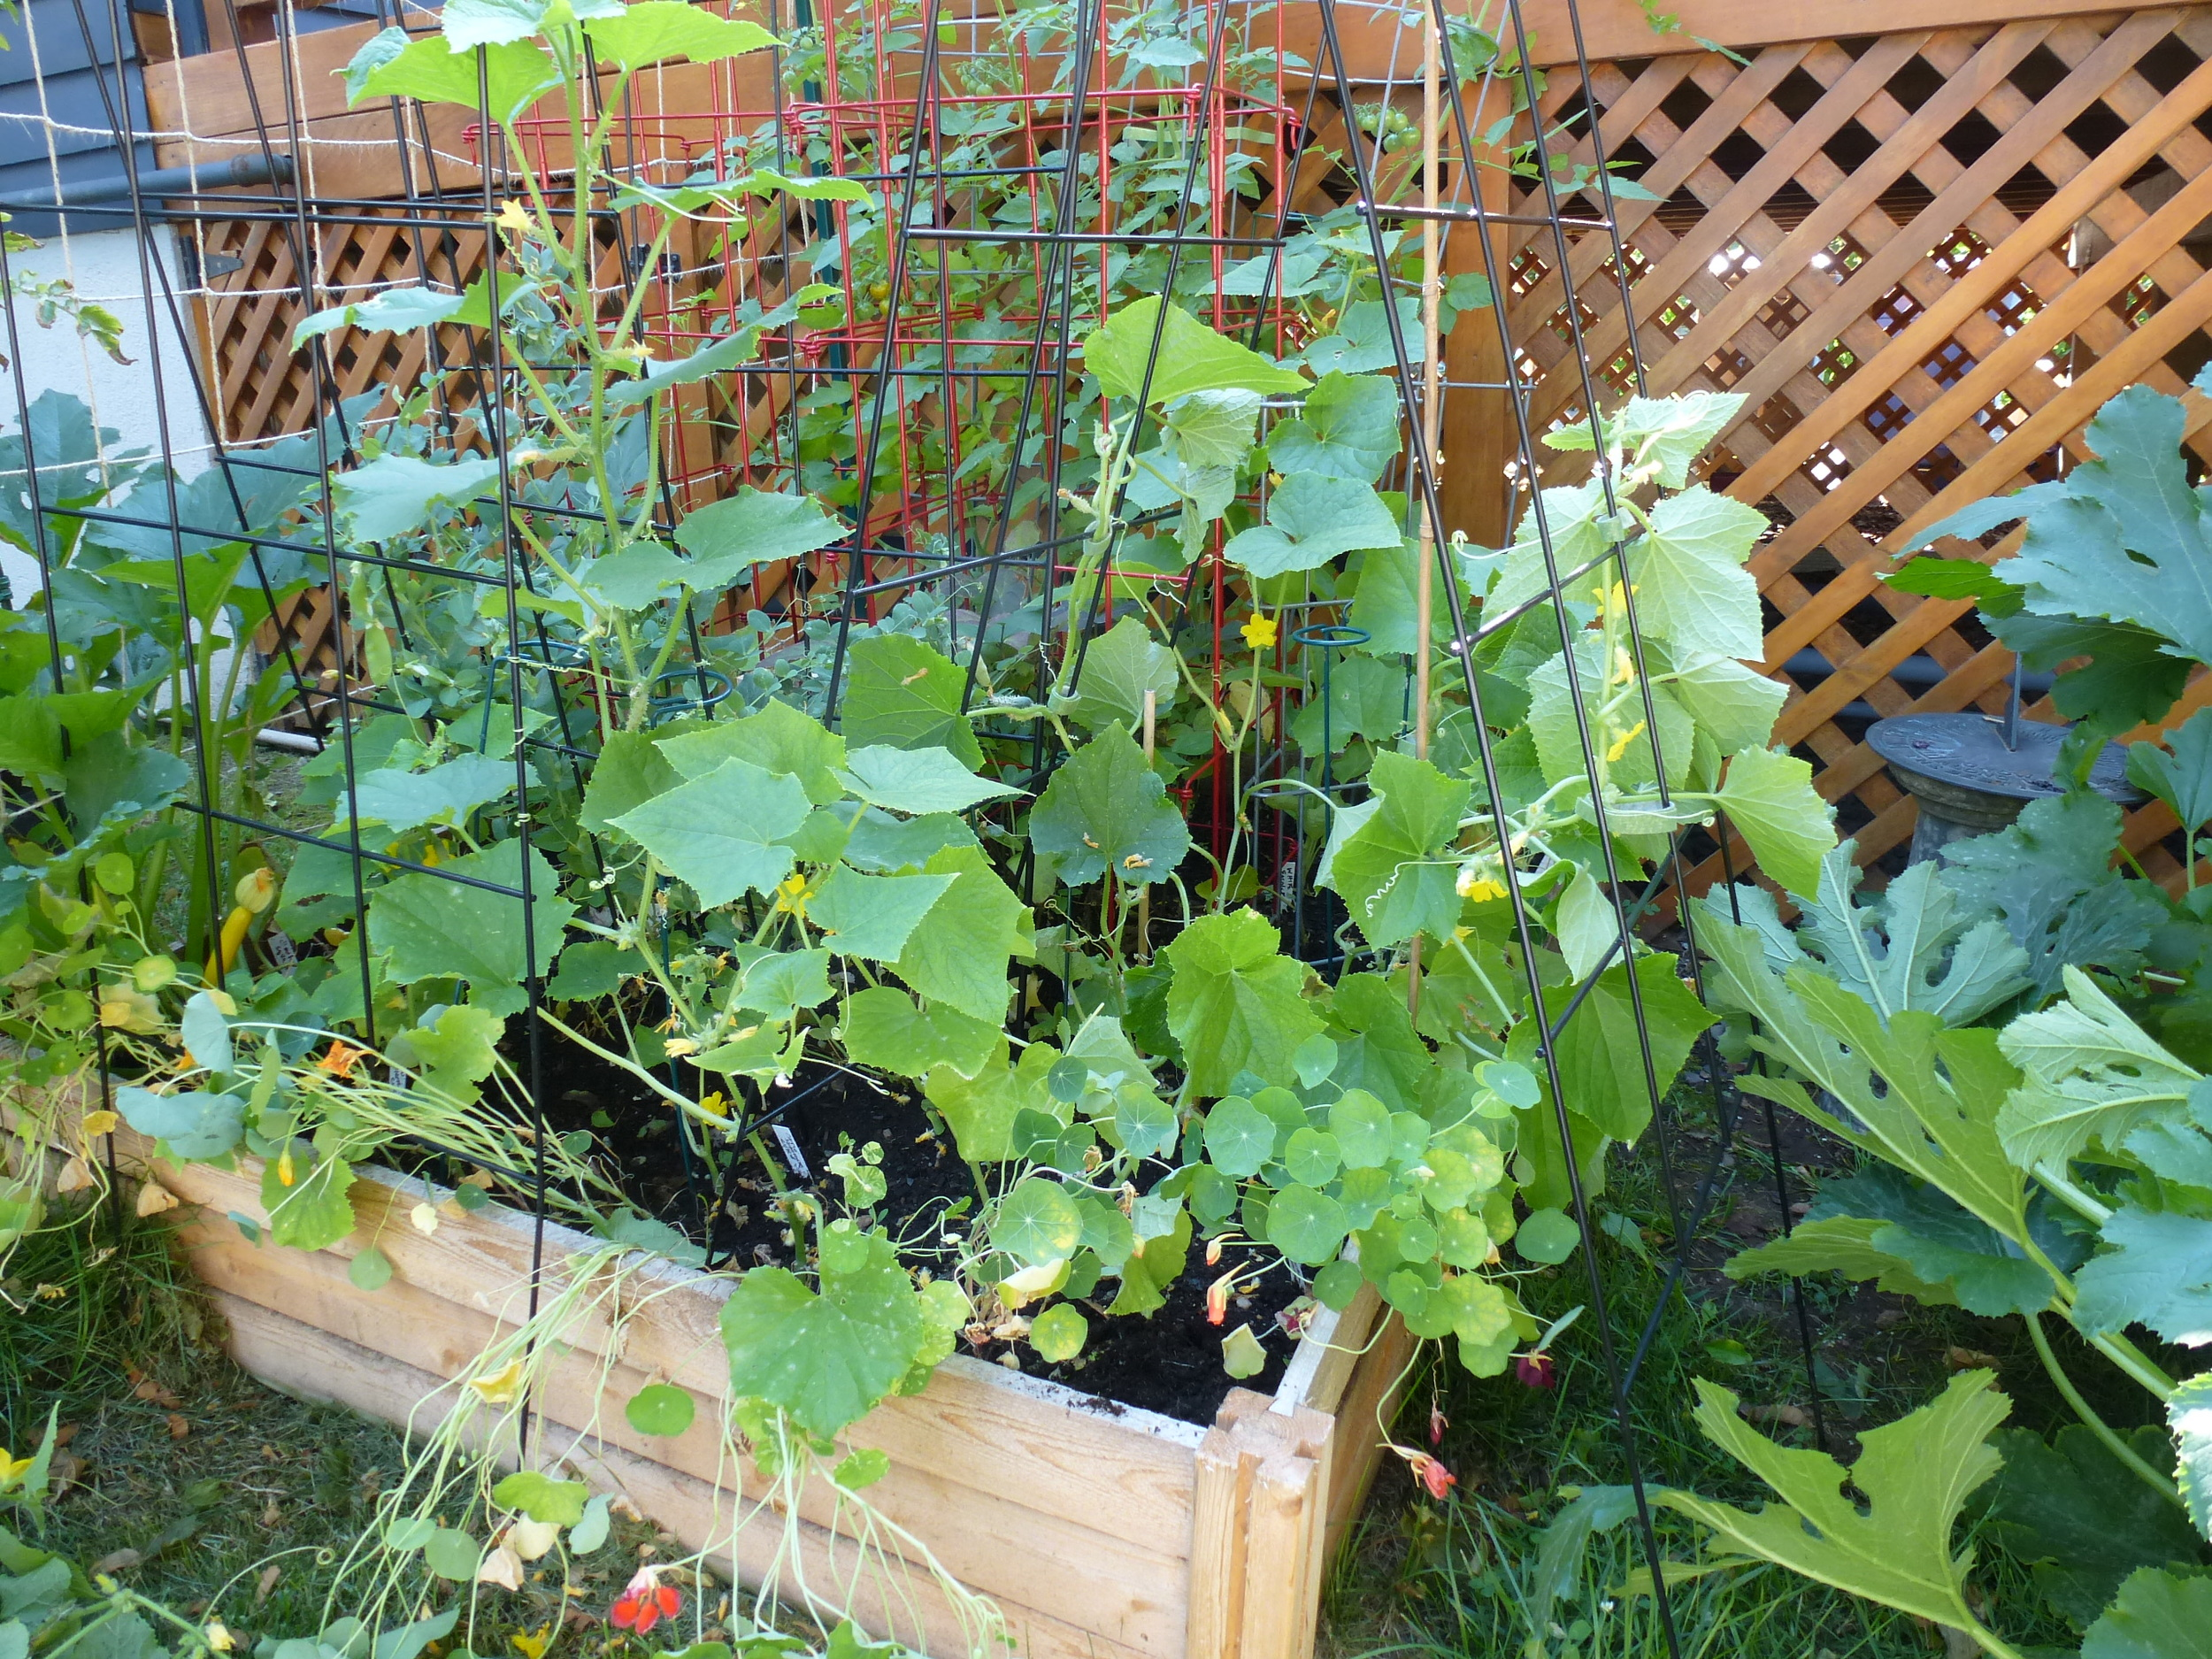 Thinned-out cucumber patch.